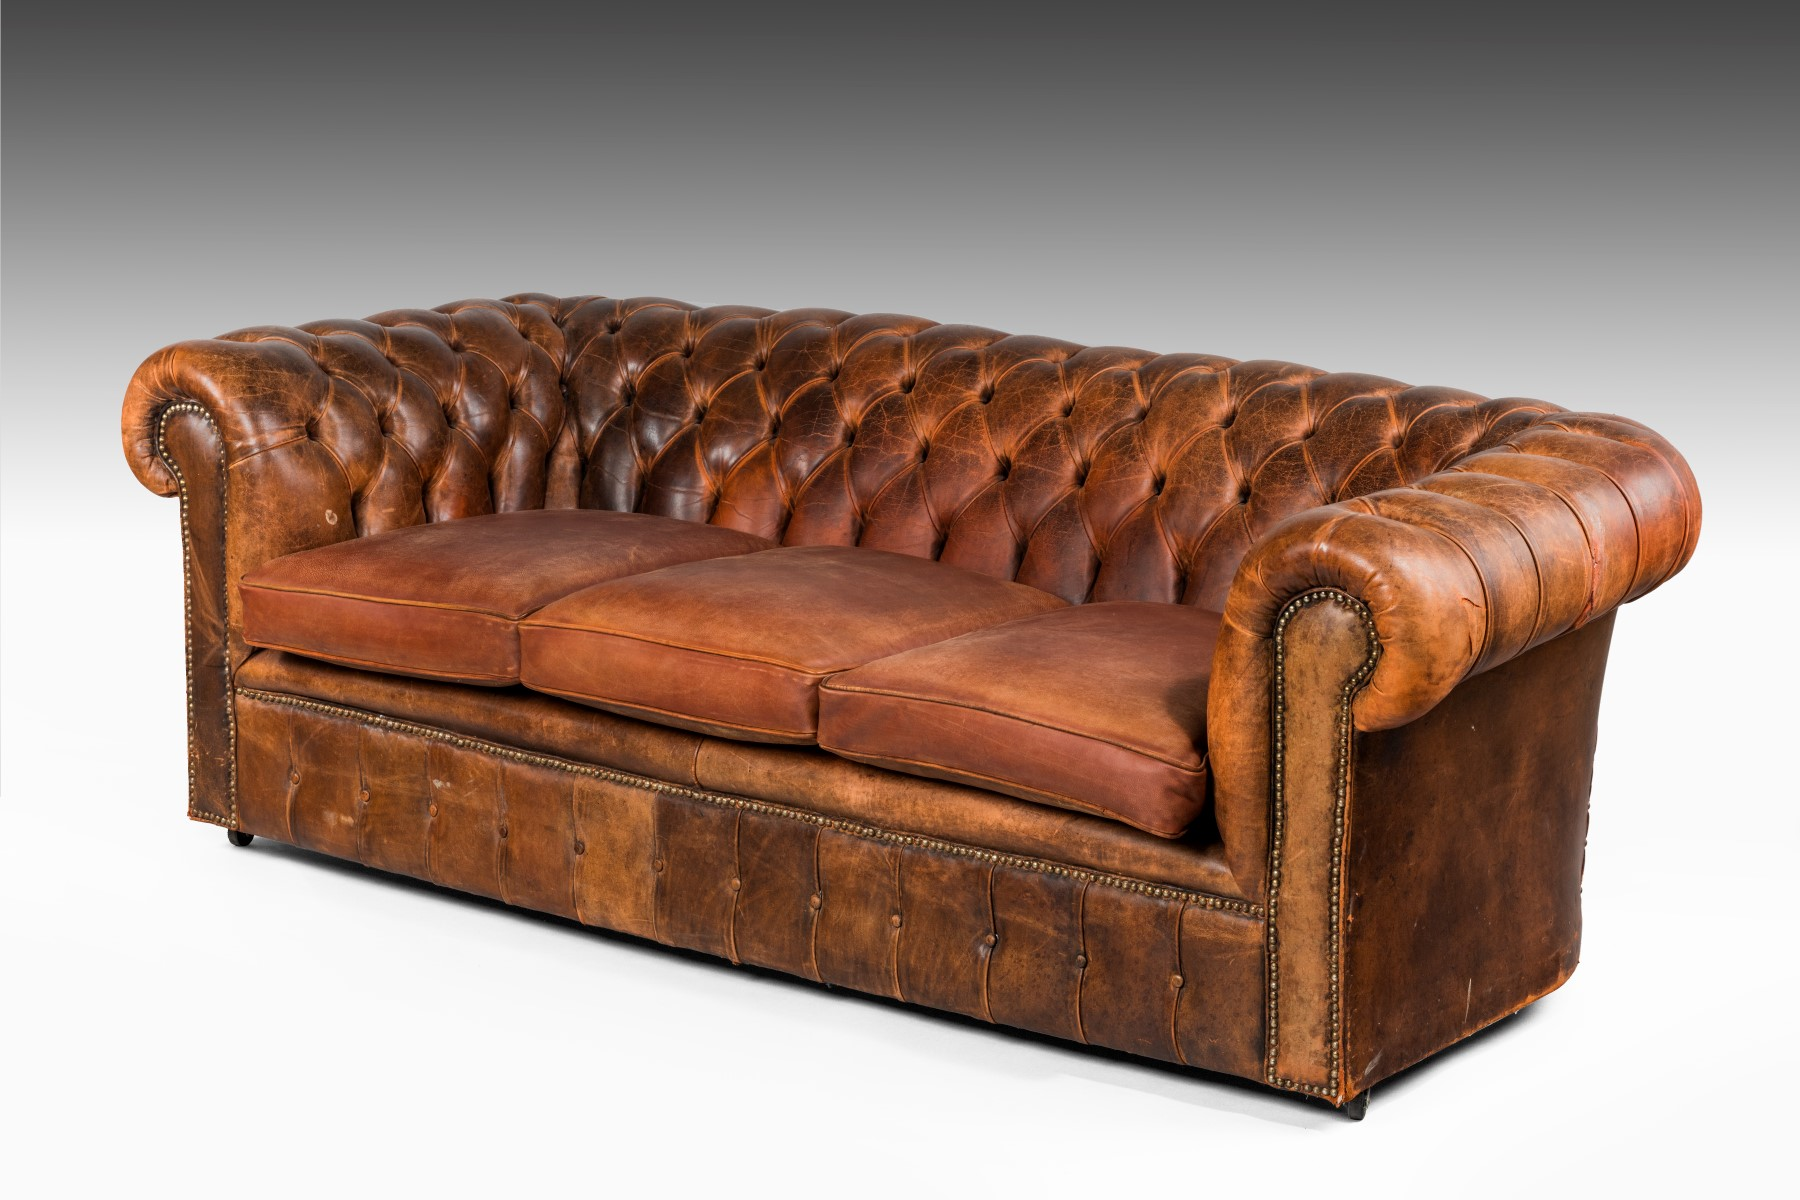 Chesterfield Settees Uk 28 Images Victorian Chesterfield Sofa Settee 280202 Very Large